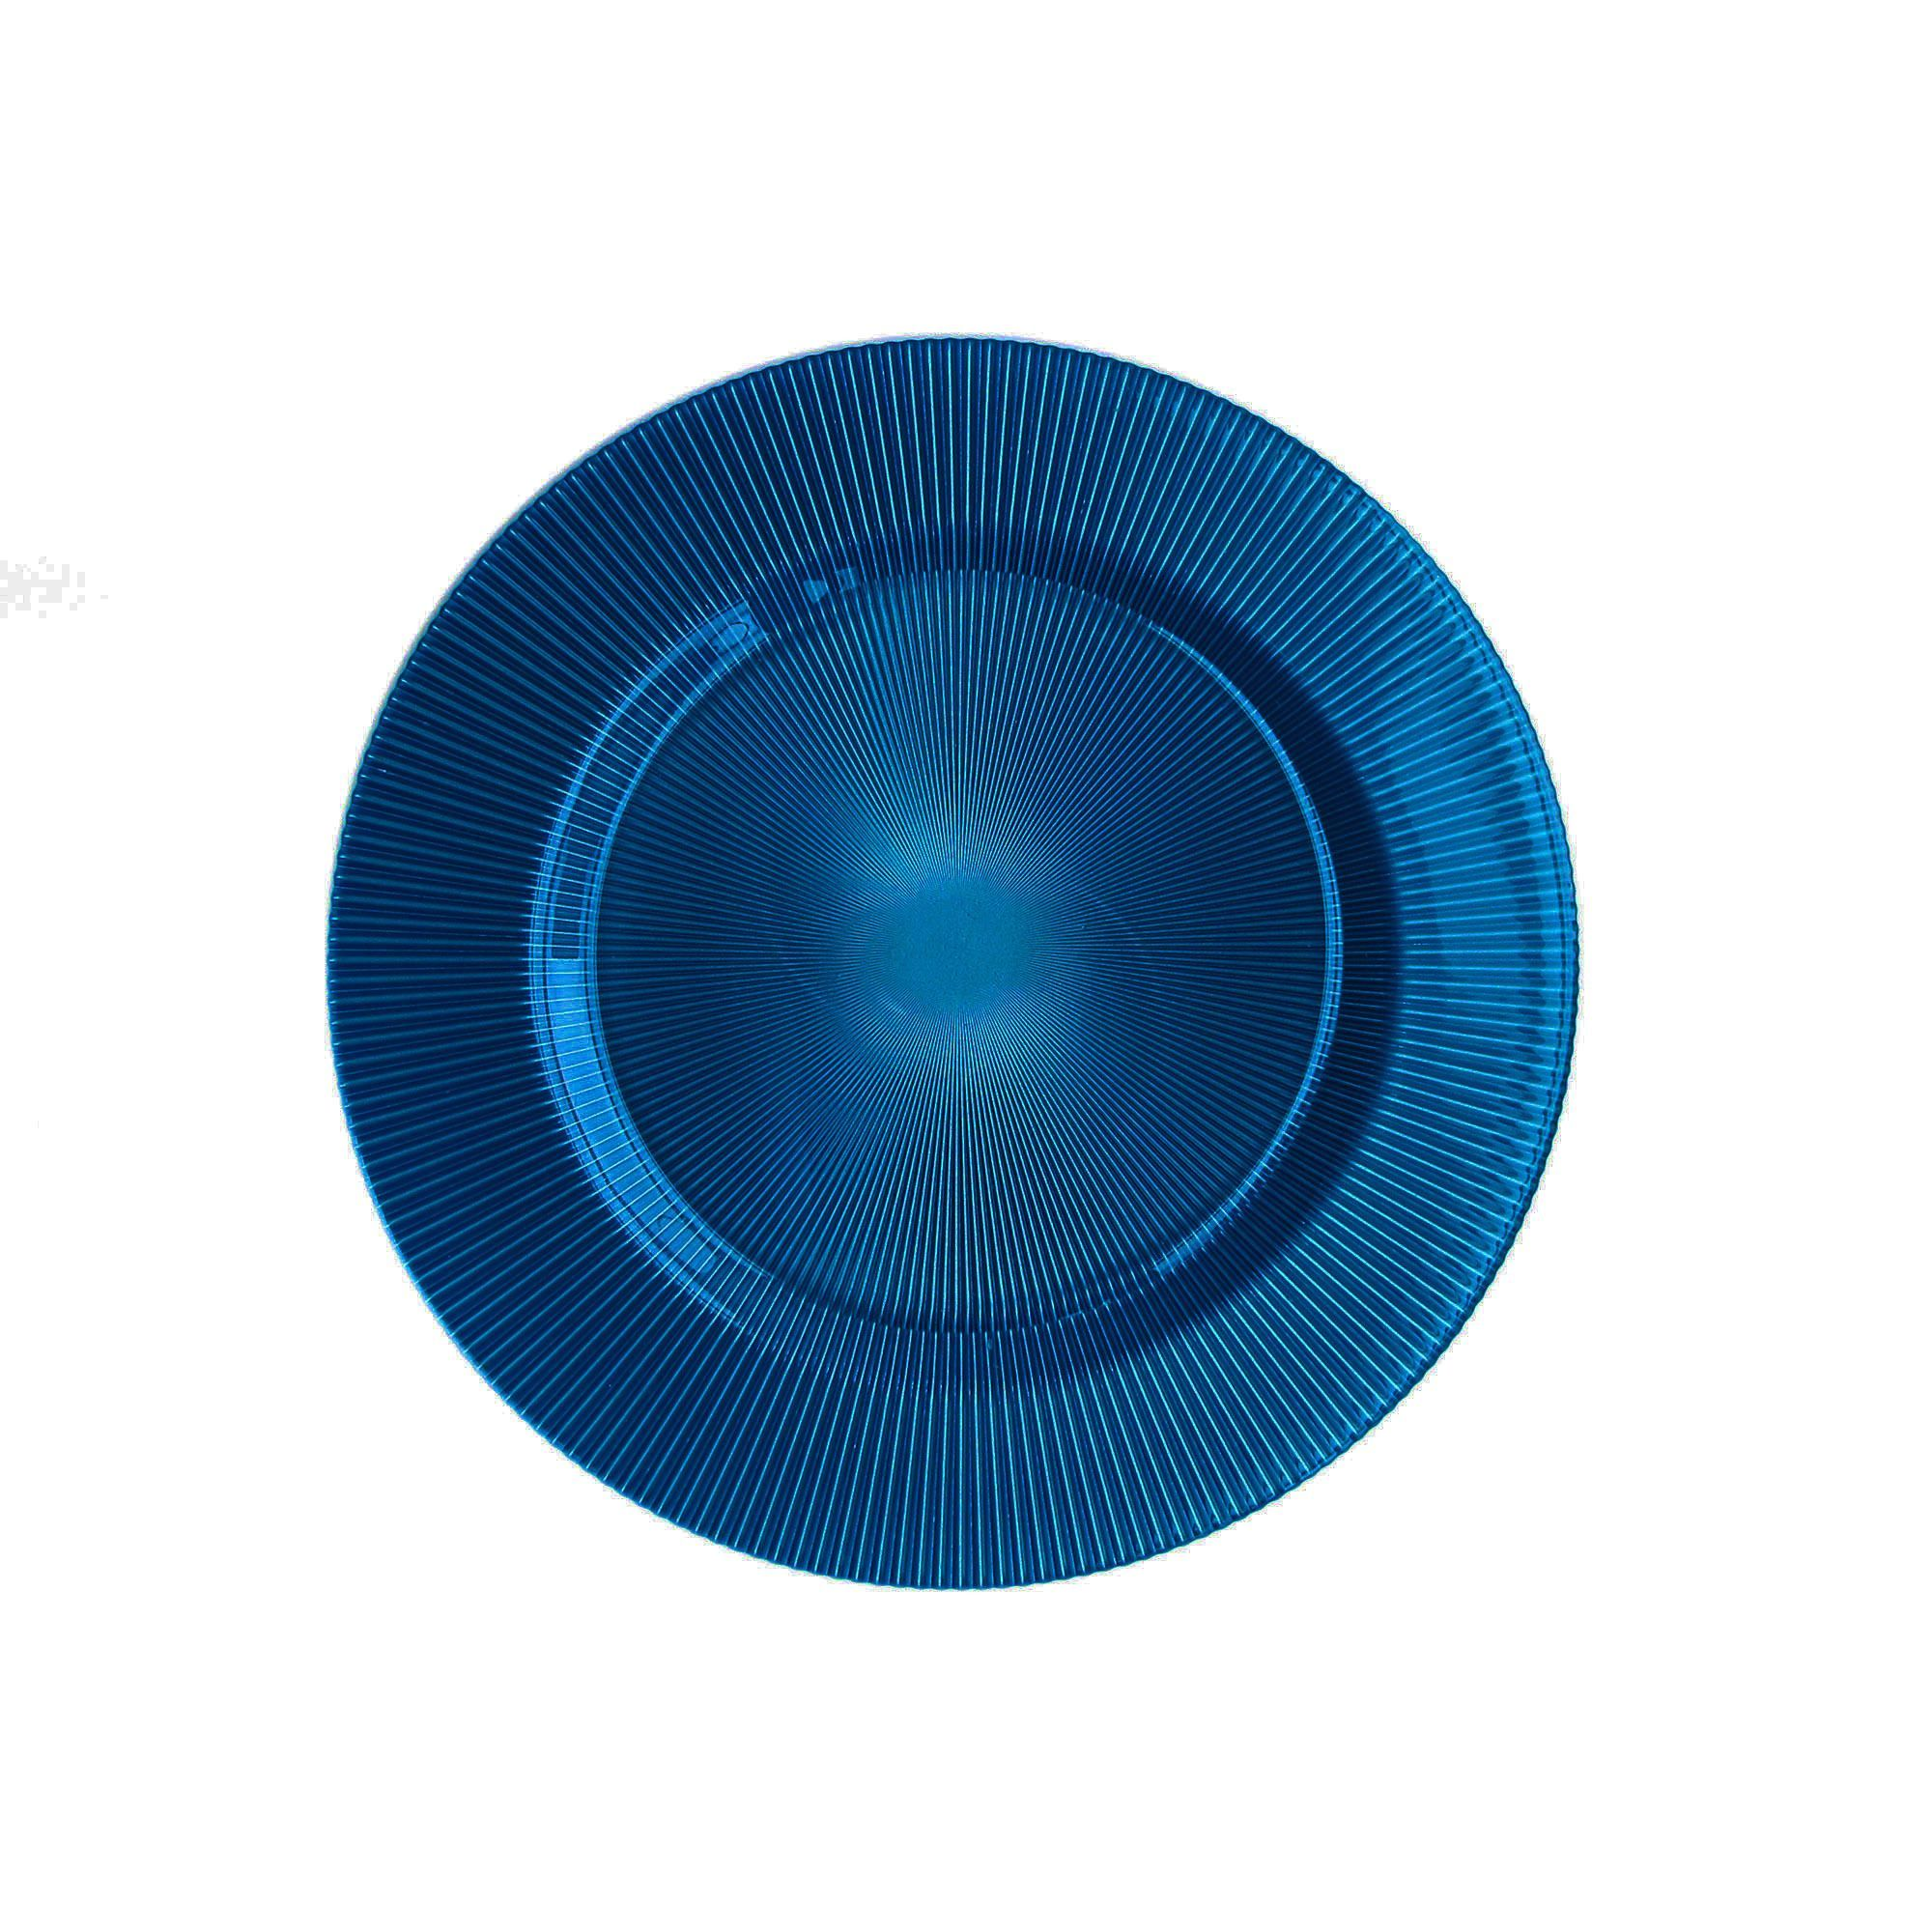 Pearl ChargeIt by Jay Sunray Blue Charger Plate